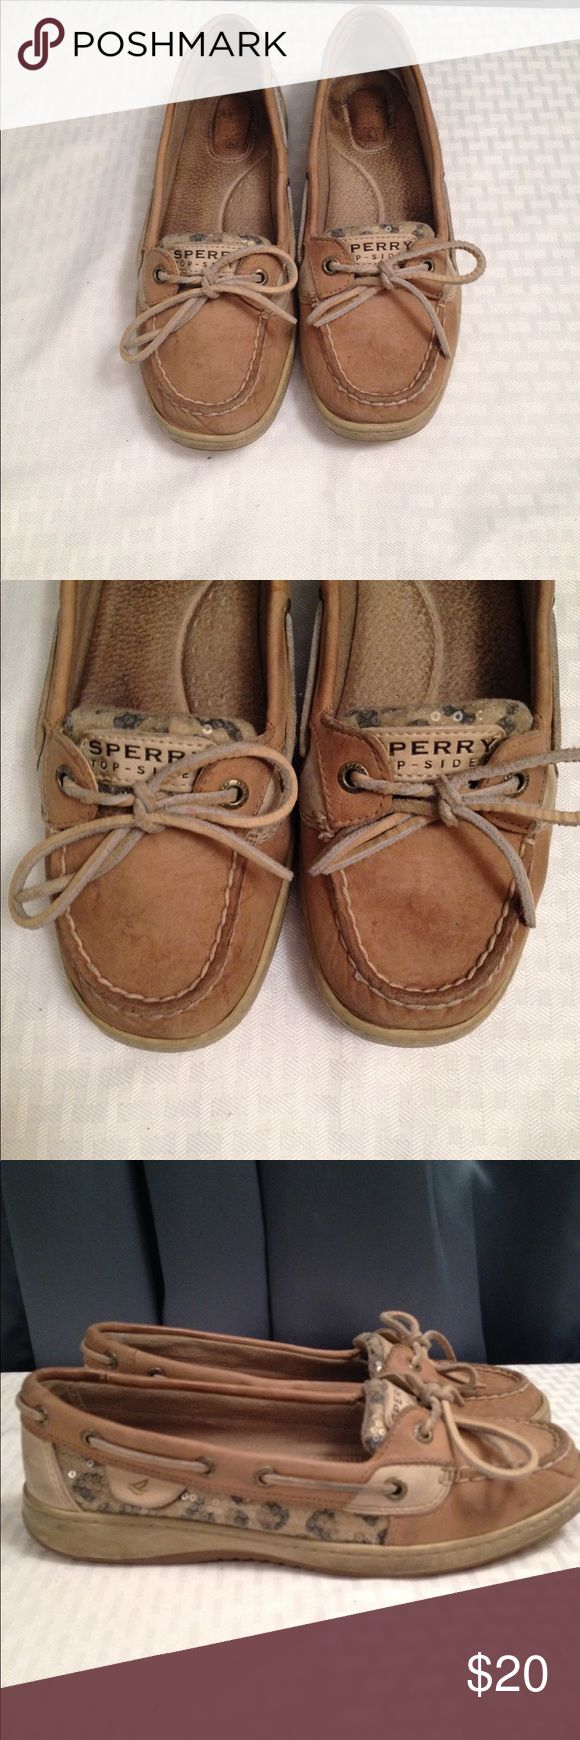 Sperry Top-Sider Sperry Top-Sider leather needs cleaned Sperry Top-Sider Shoes